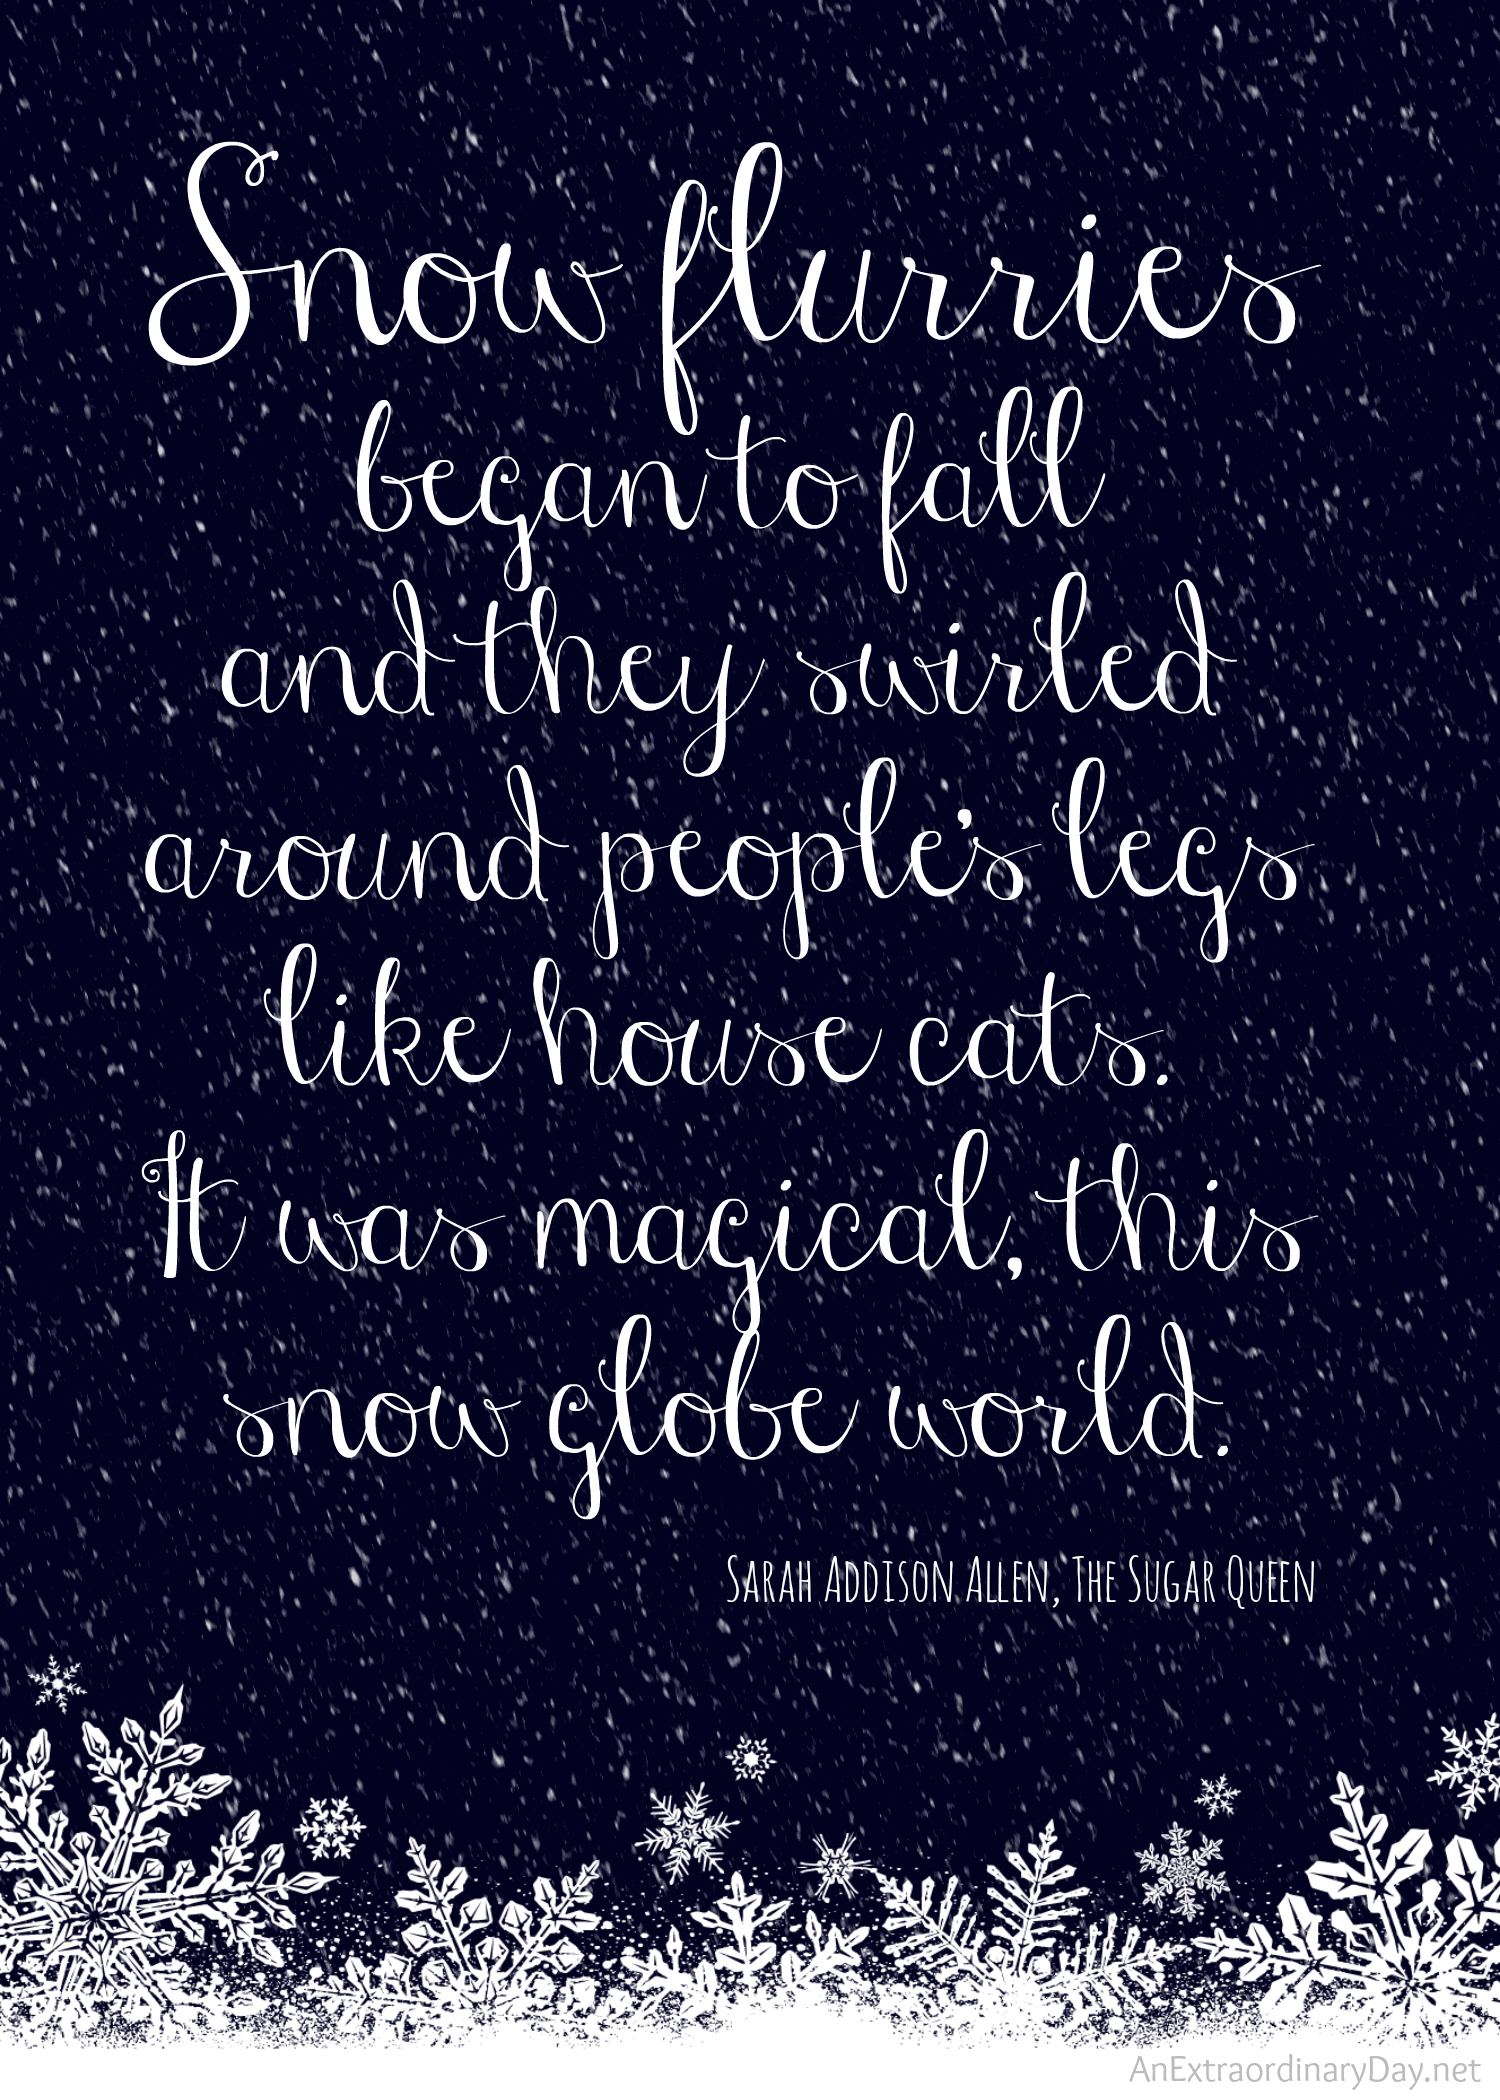 Snowy Day Inspirational Quotes. QuotesGram